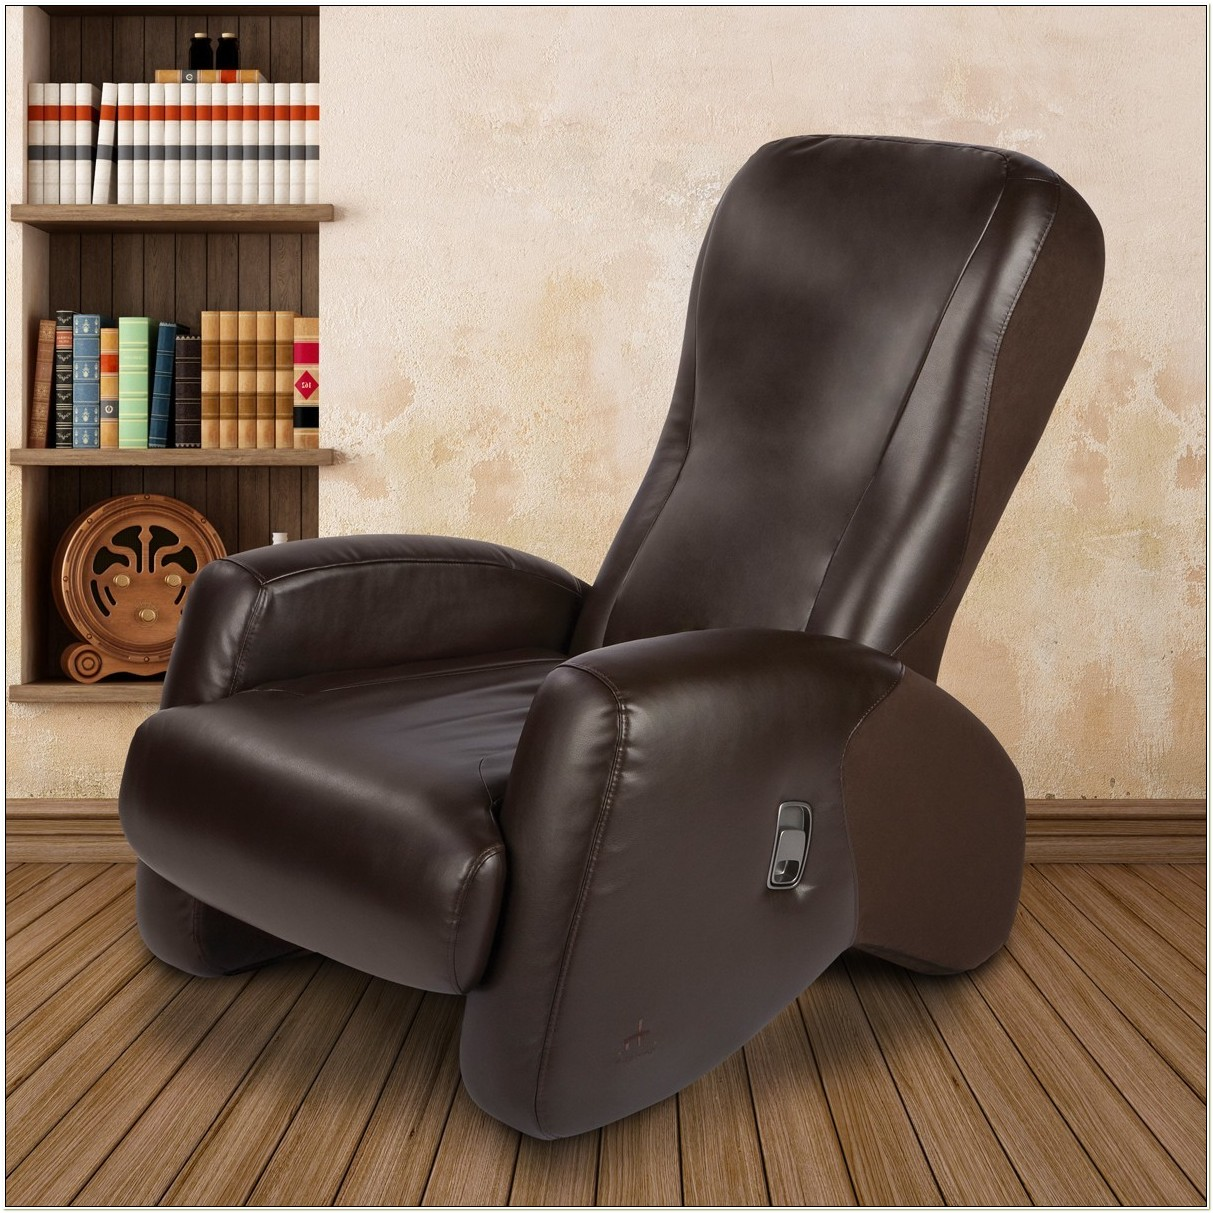 Human Touch Ijoy Massage Chair 2310